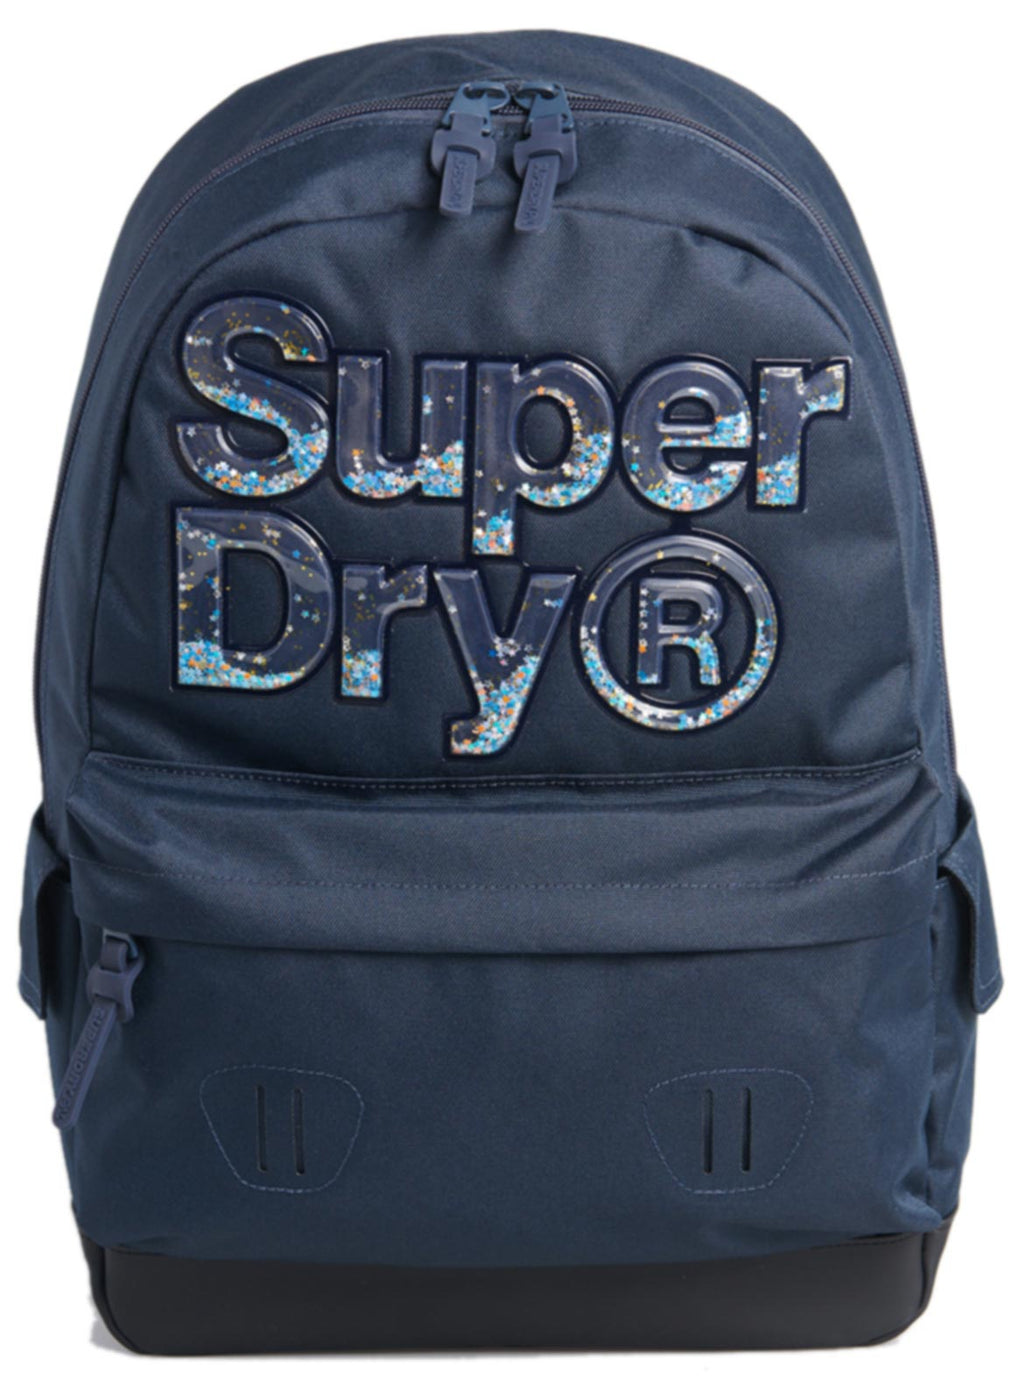 Superdry Aqua Star Montana Backpack Bag Navy